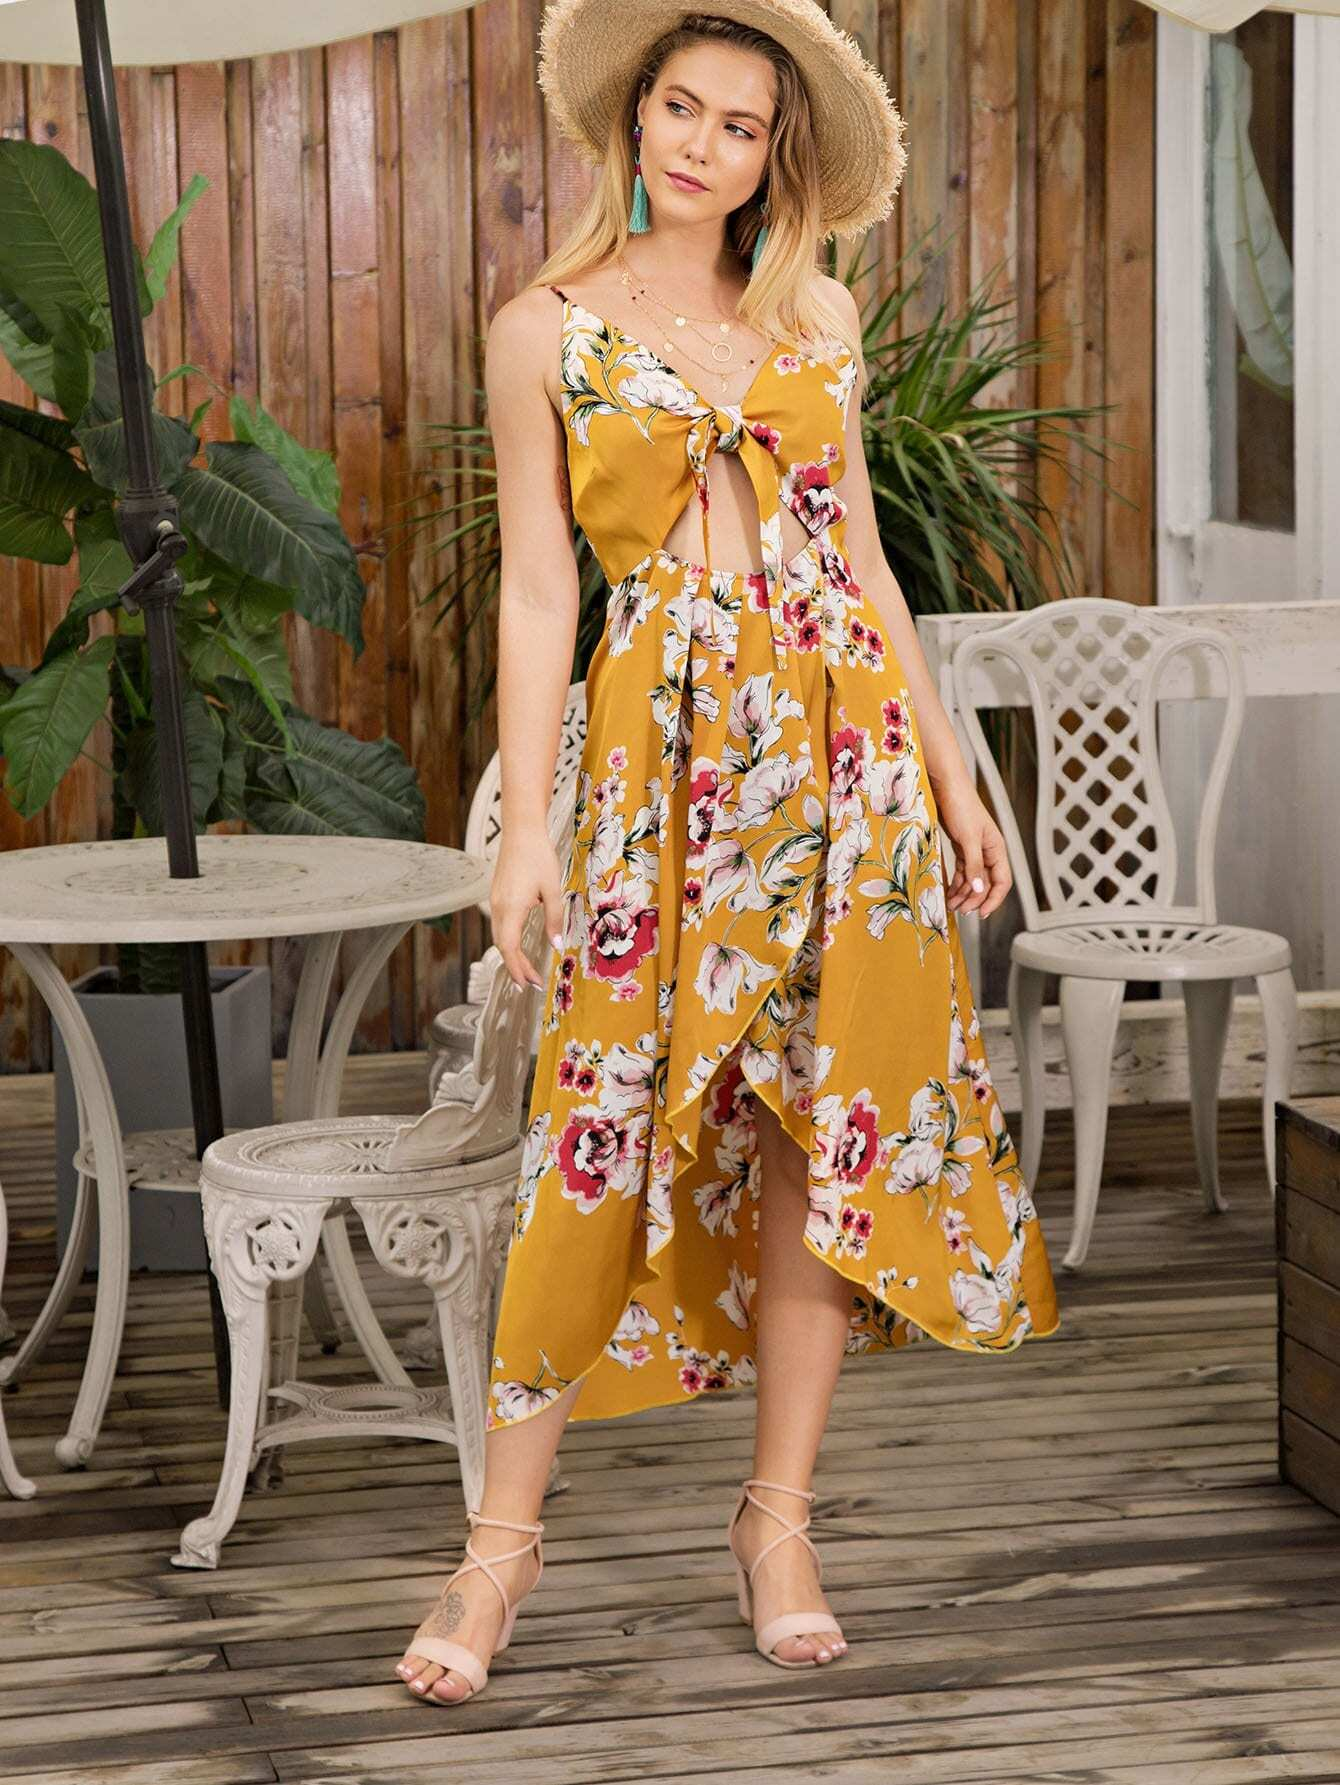 Floral Print Knot Front Cut Out Asymmetrical Hem Dress диск скад стар 6xr15 5x105 мм et39 алмаз матовый 0842131